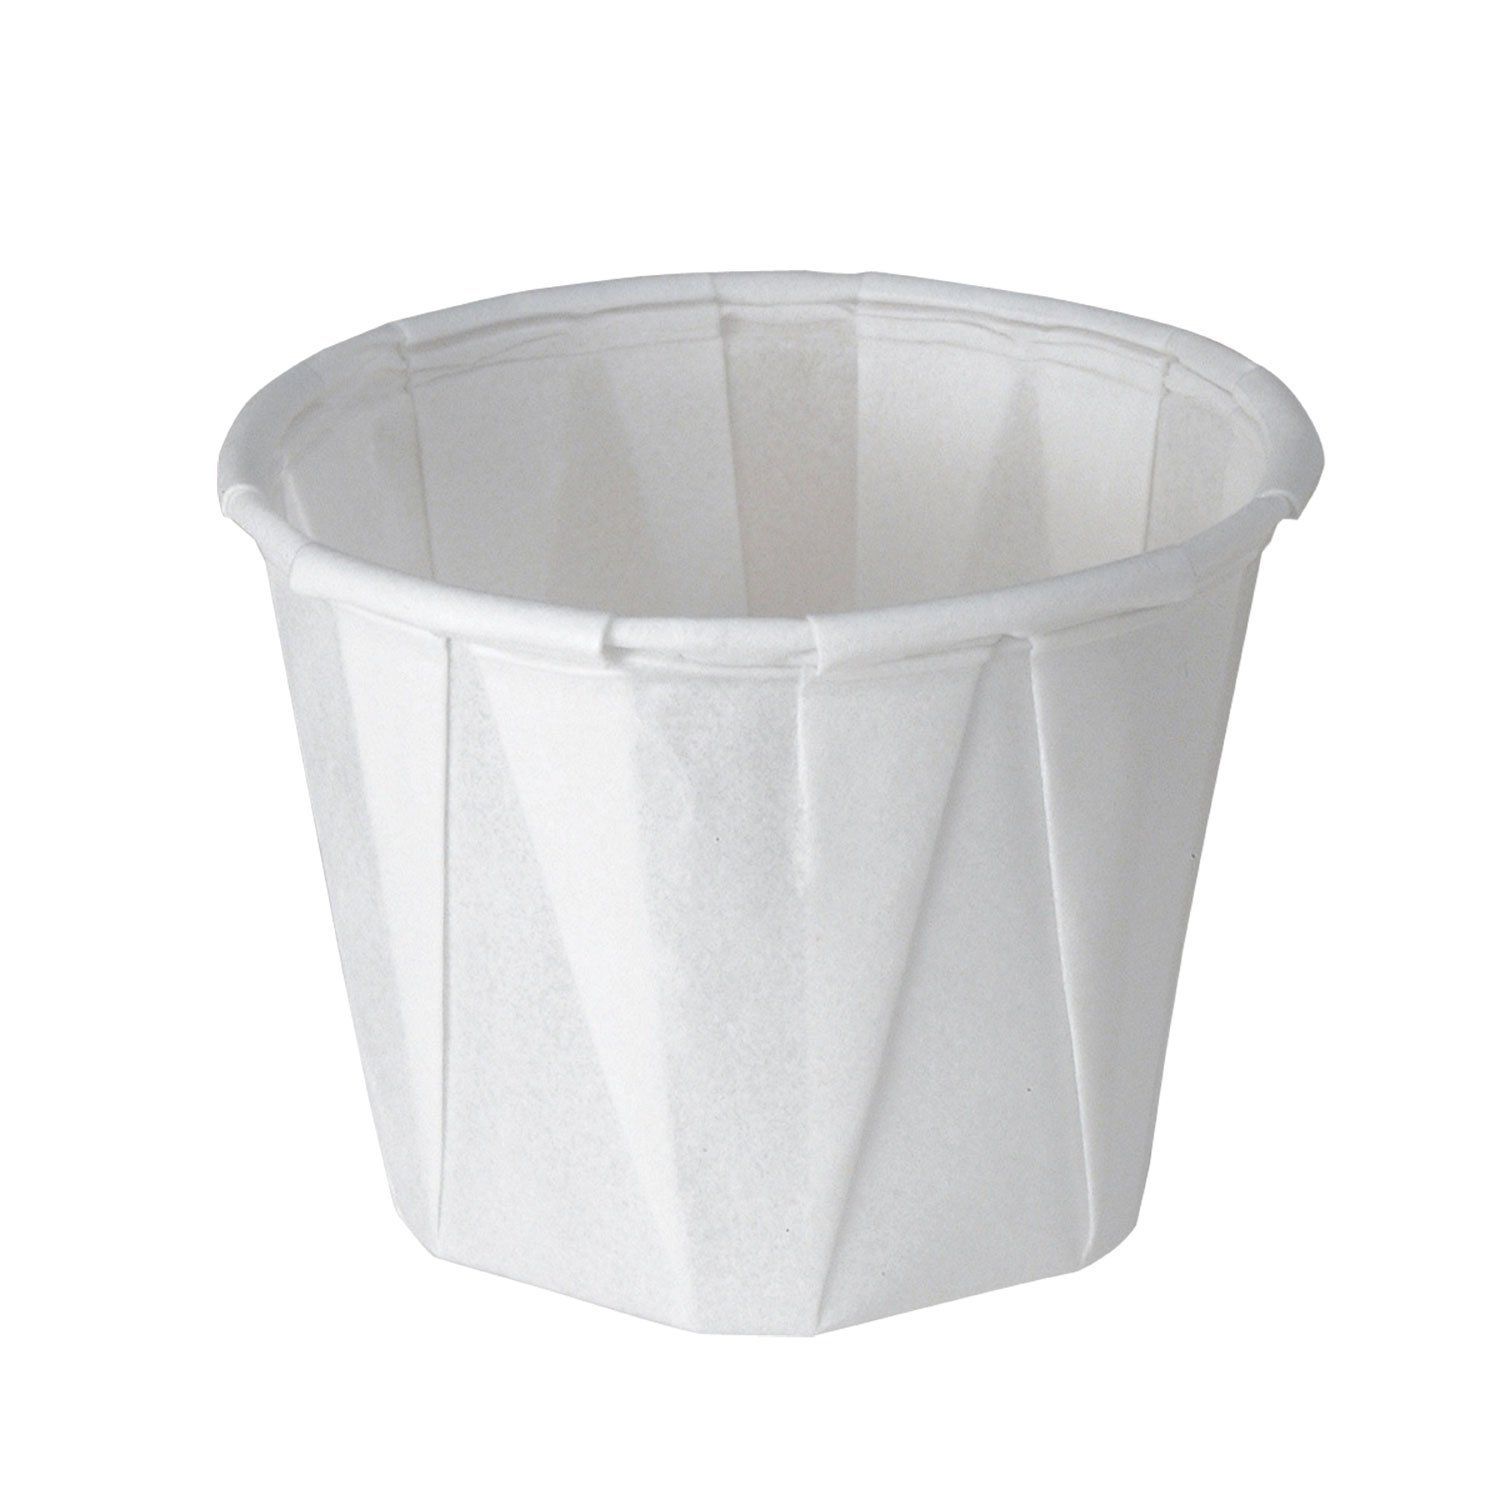 Solo 100-2050 1-oz. White Treated Paper Pleated Soufflé Portion Cup (2 Packs of 250 Cups) 100-2050-2